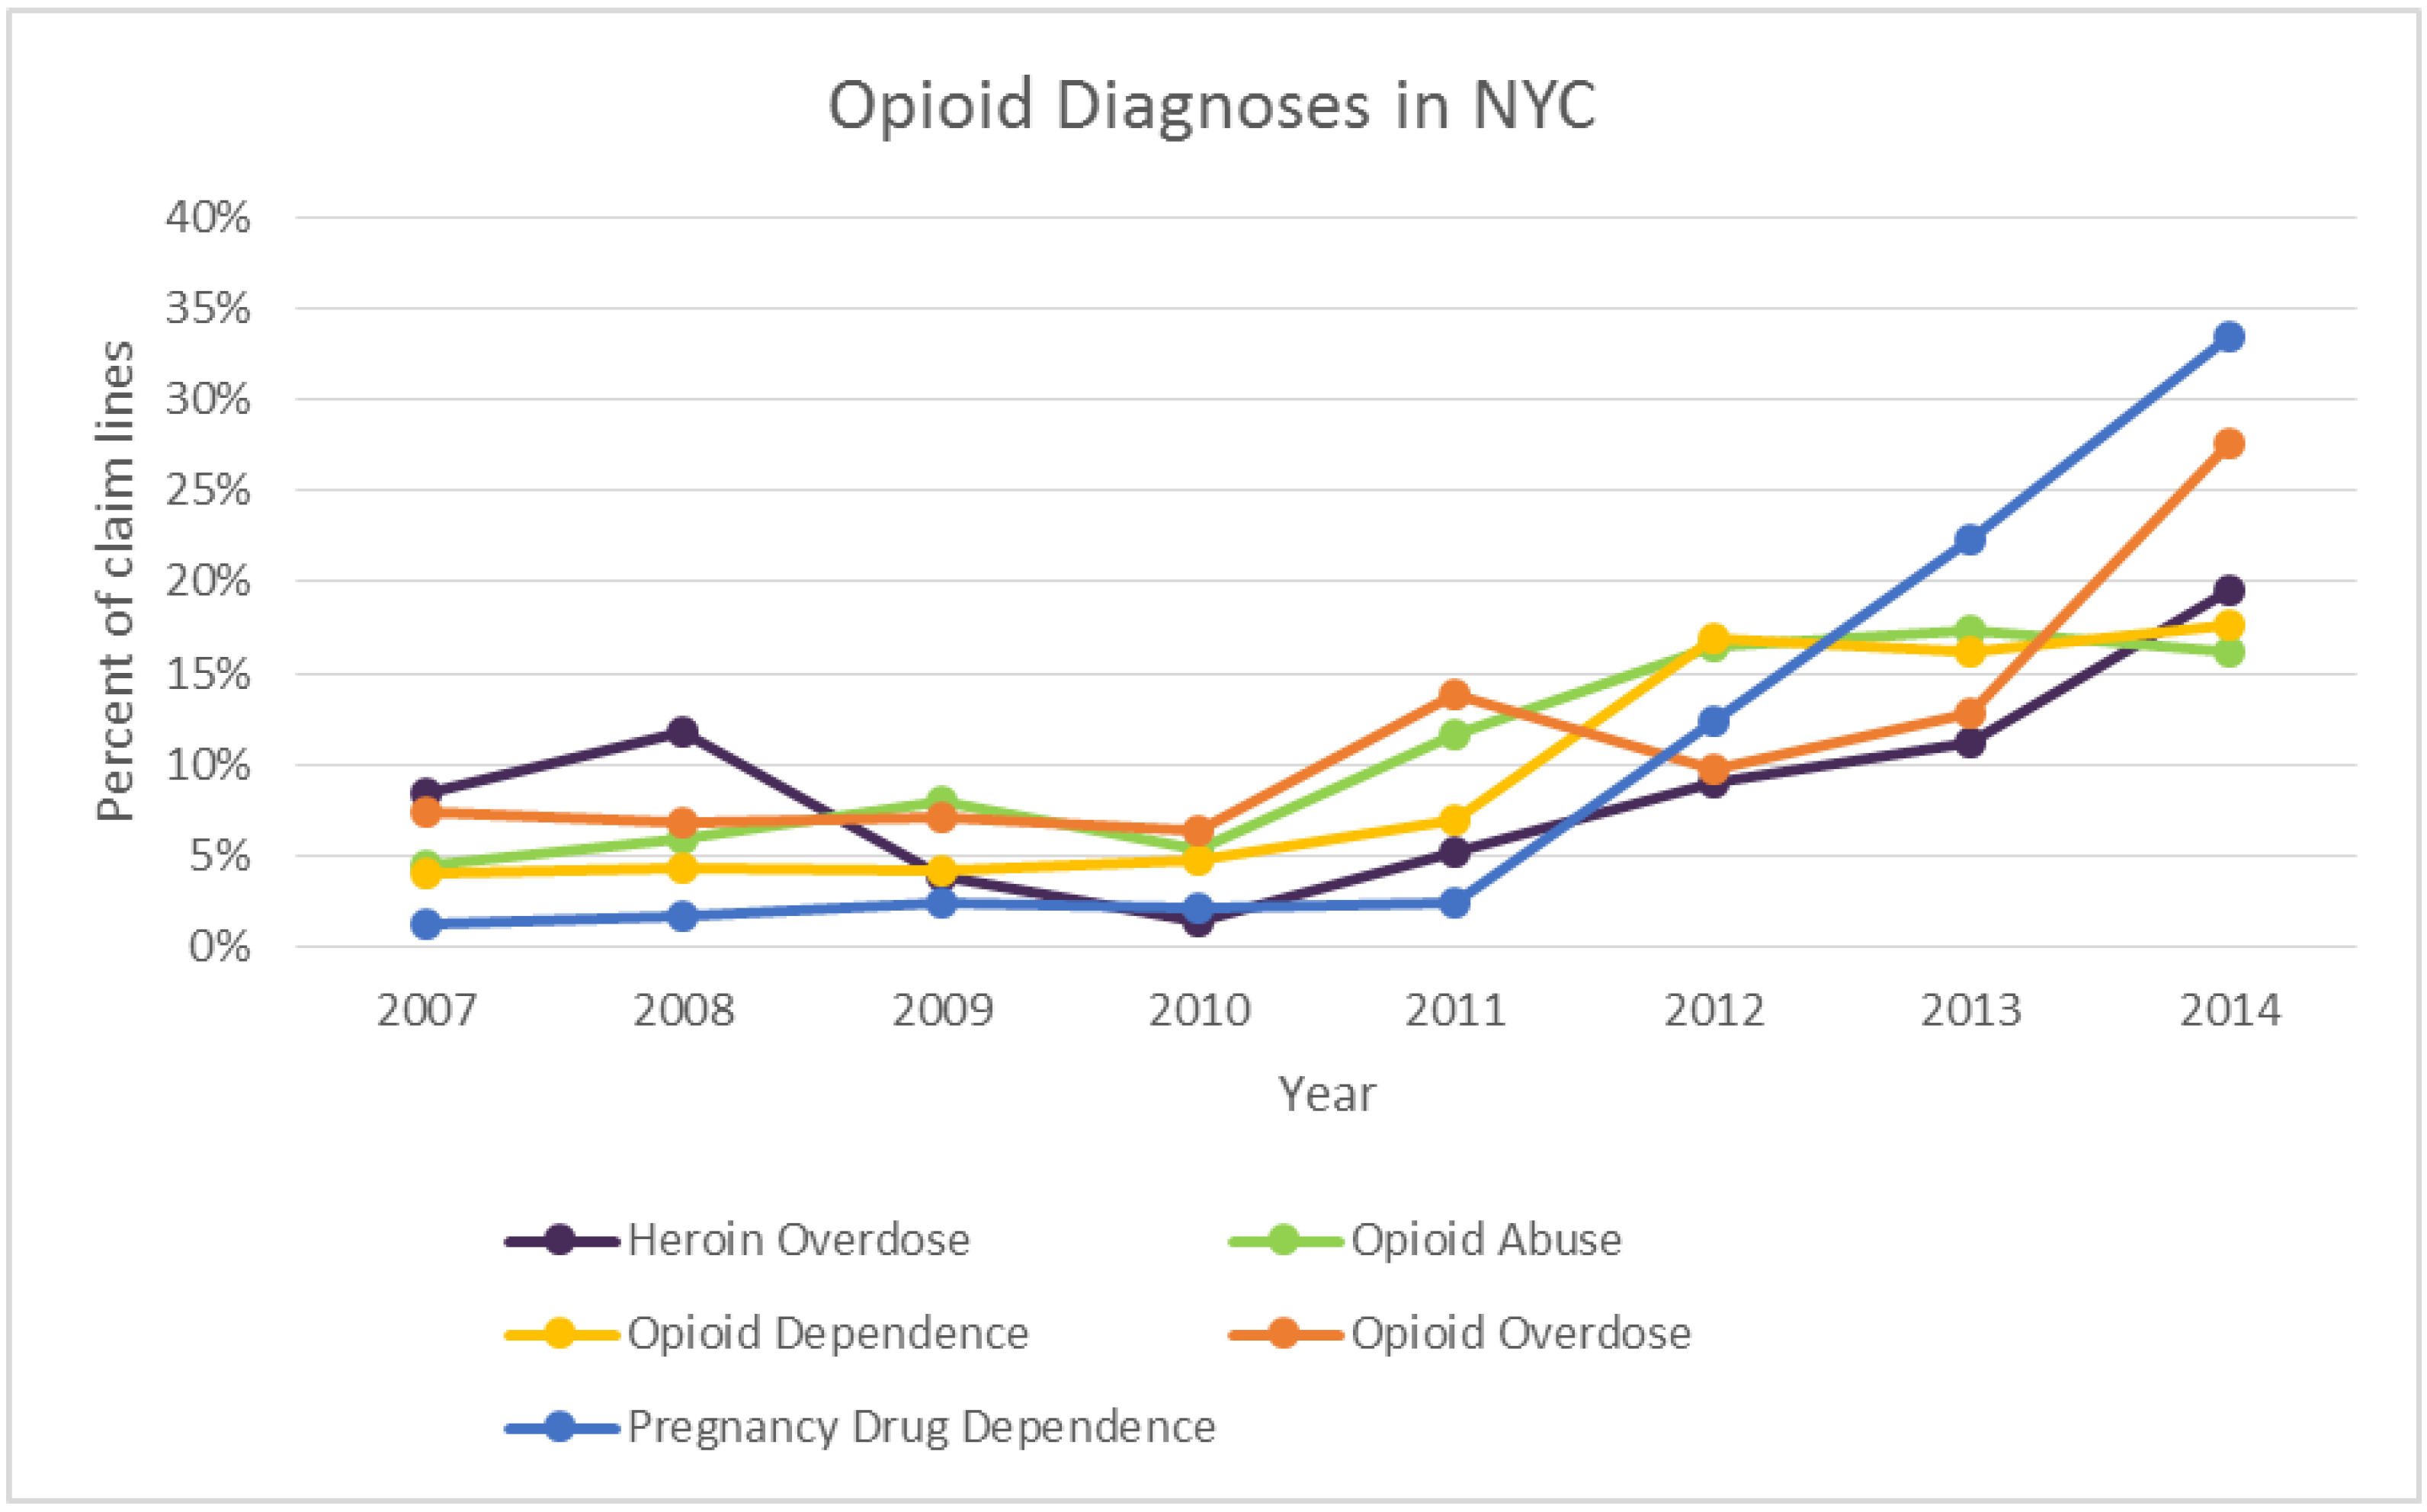 opioid diagnoses in nyc